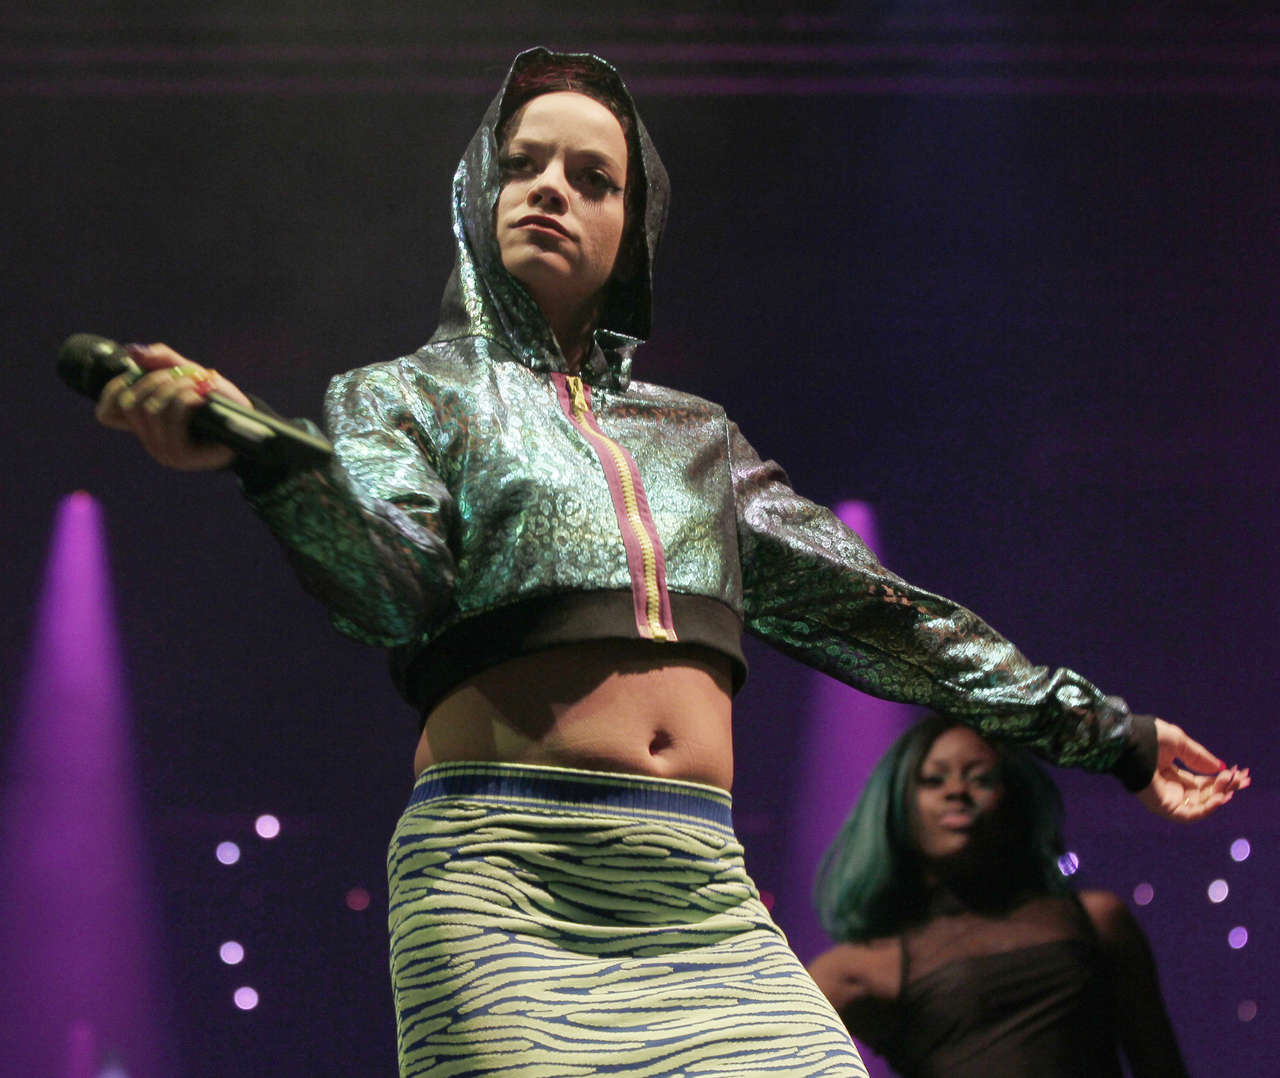 Lily Allen 2014 : Lily Allen – 2014 Indian Summer Festival in the Netherlands -19